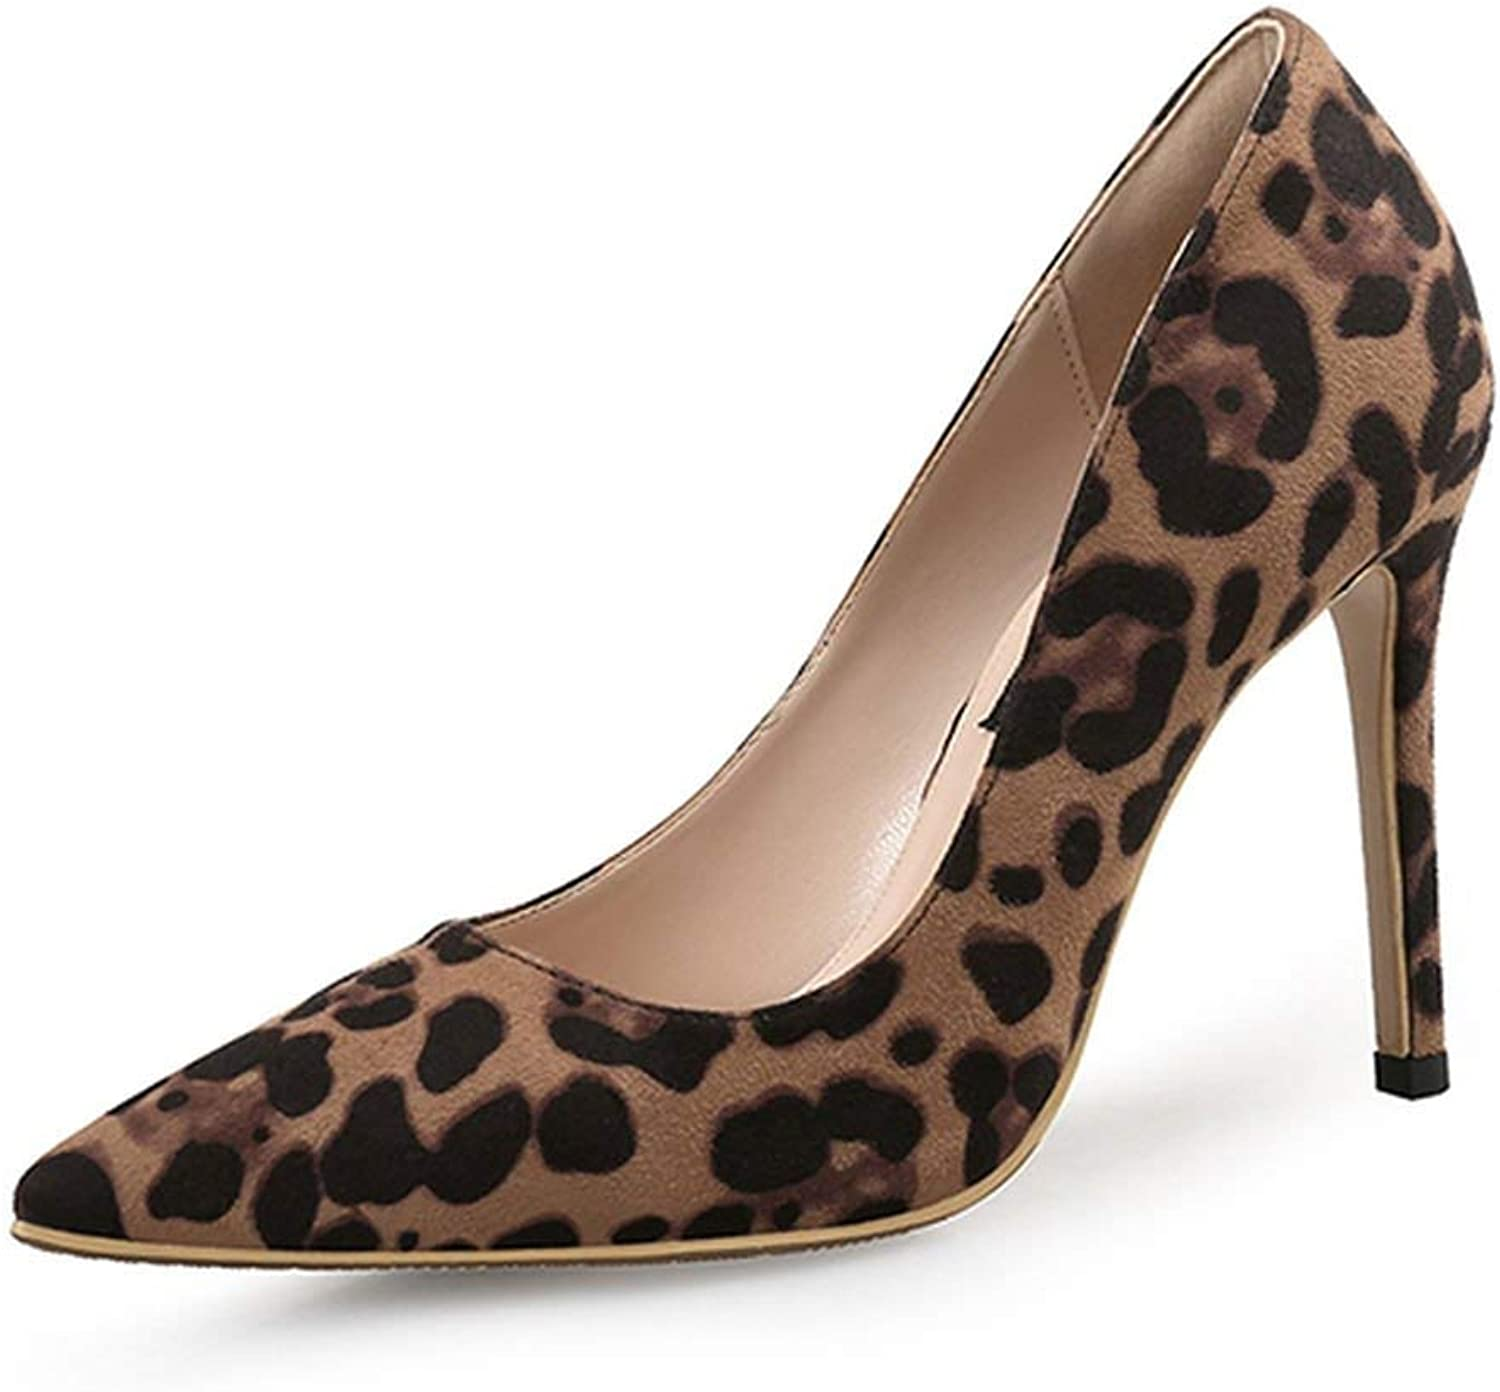 Heeled-Sandalssexy Women Pumps High Heels shoes Spring Leopard Thin Heels Woman Party shoes Plus Size Pointed Toe Single Female Pumps 45,Basic 8Cm,6